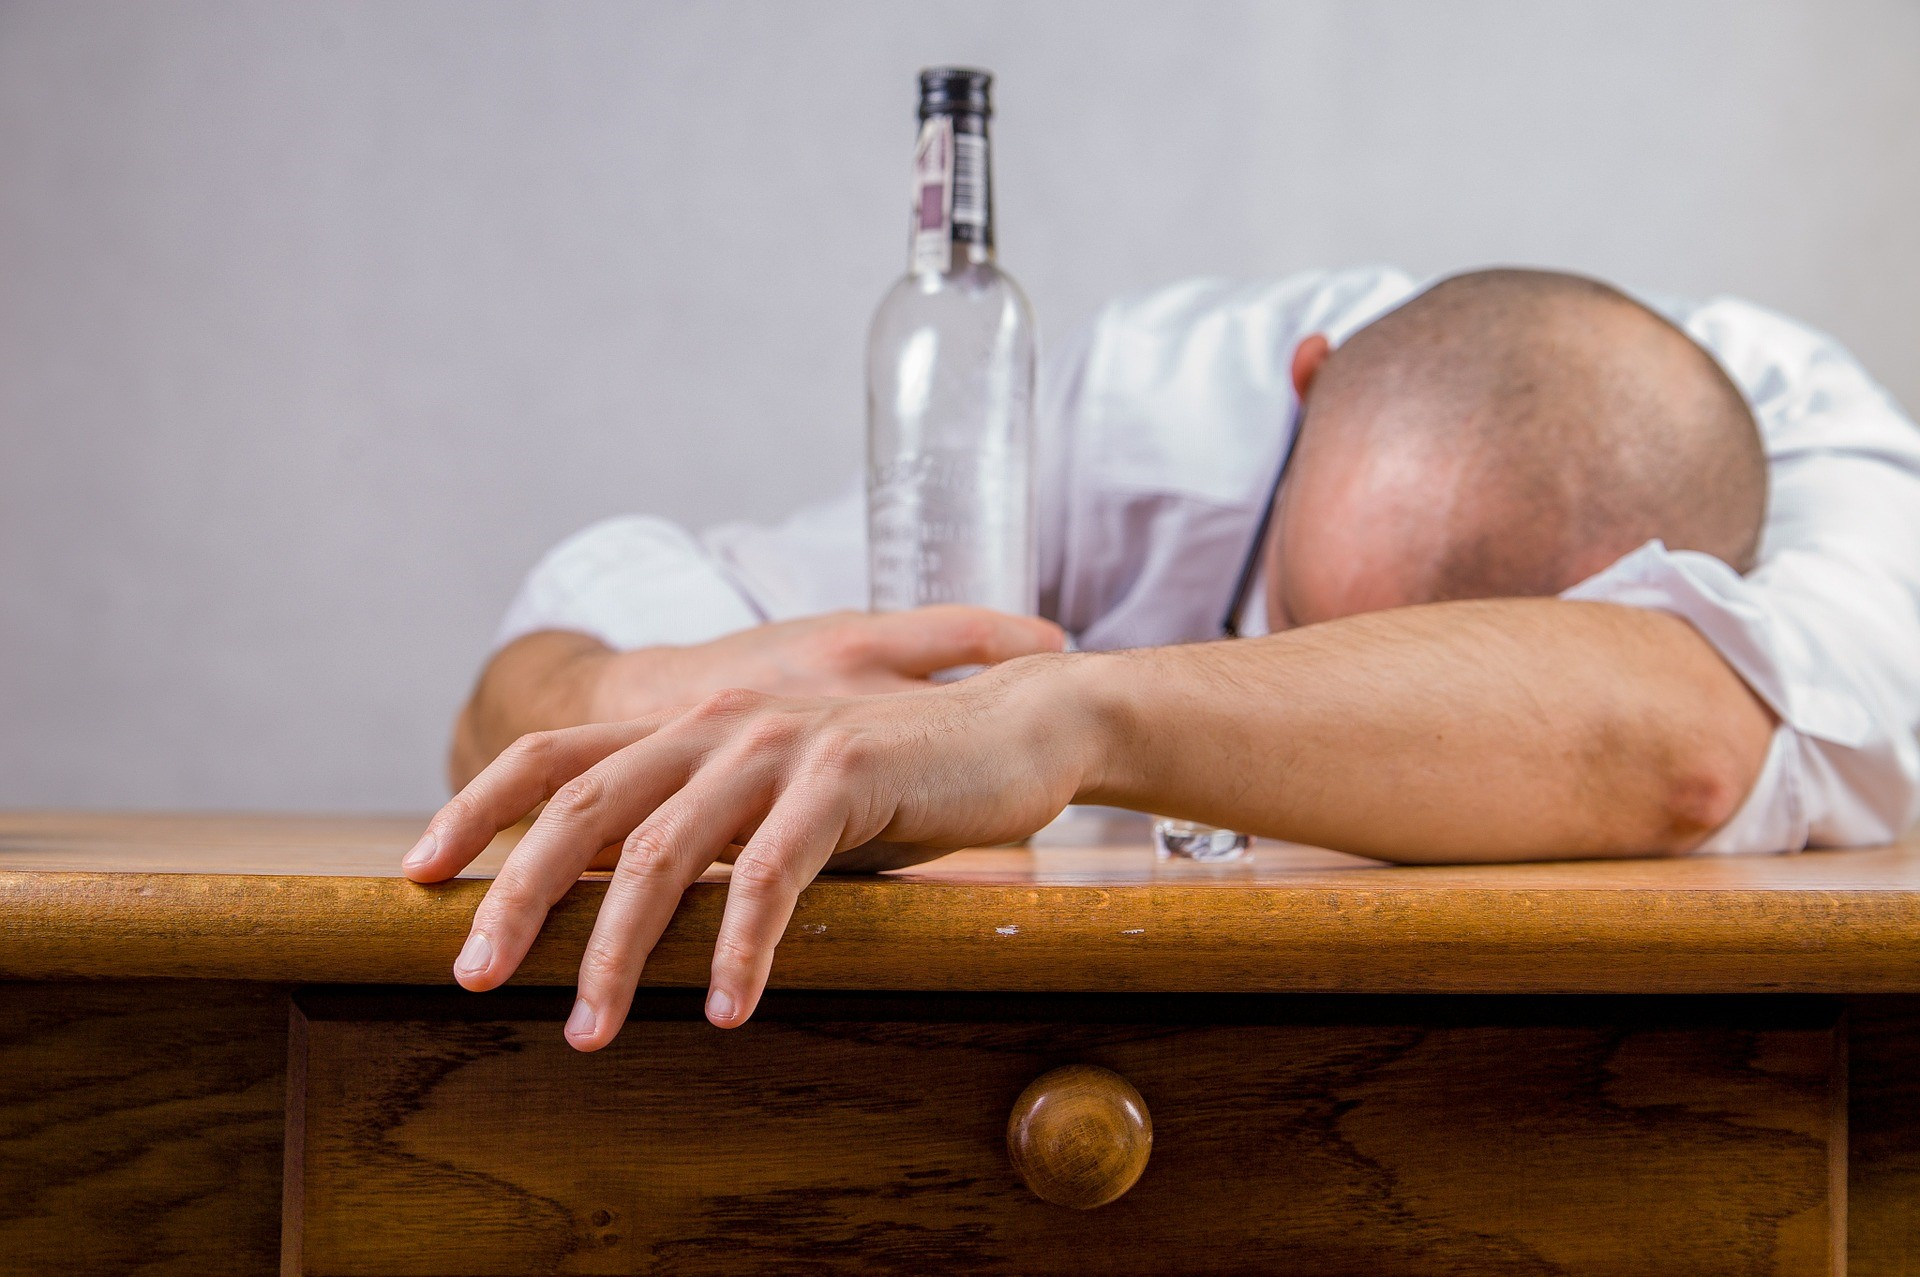 6 Surprisingly Easy Ways to Prevent Hangovers.